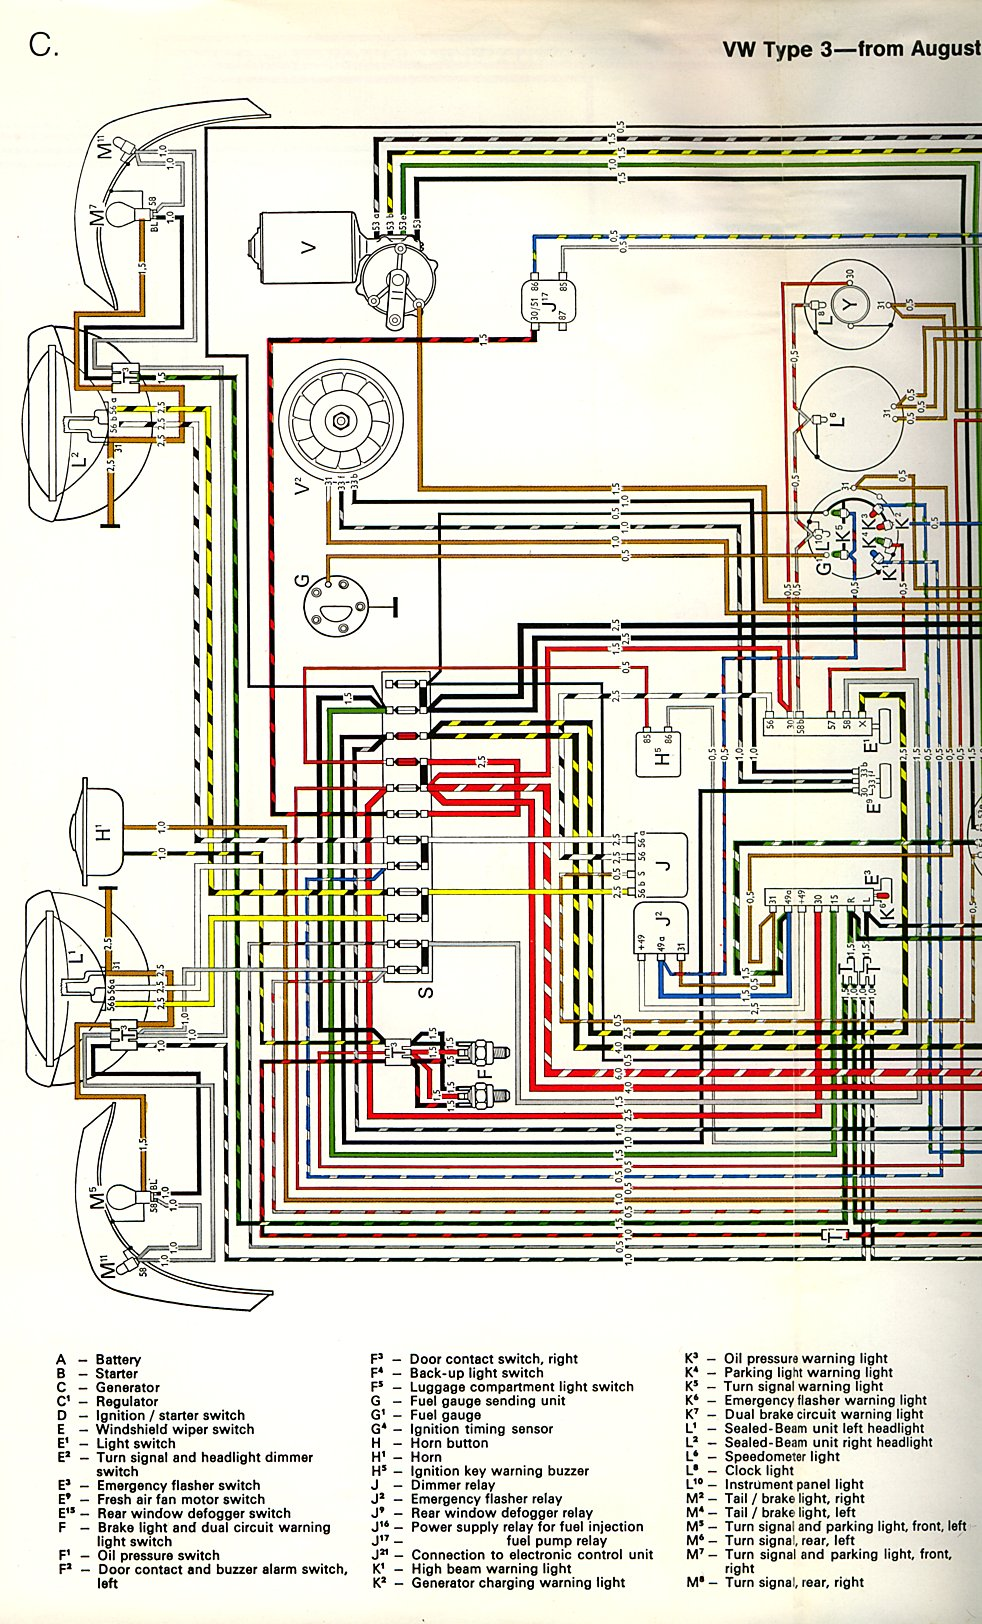 Wire Furthermore 1968 Vw Beetle Emergency Flasher Relay Wiring Diagram